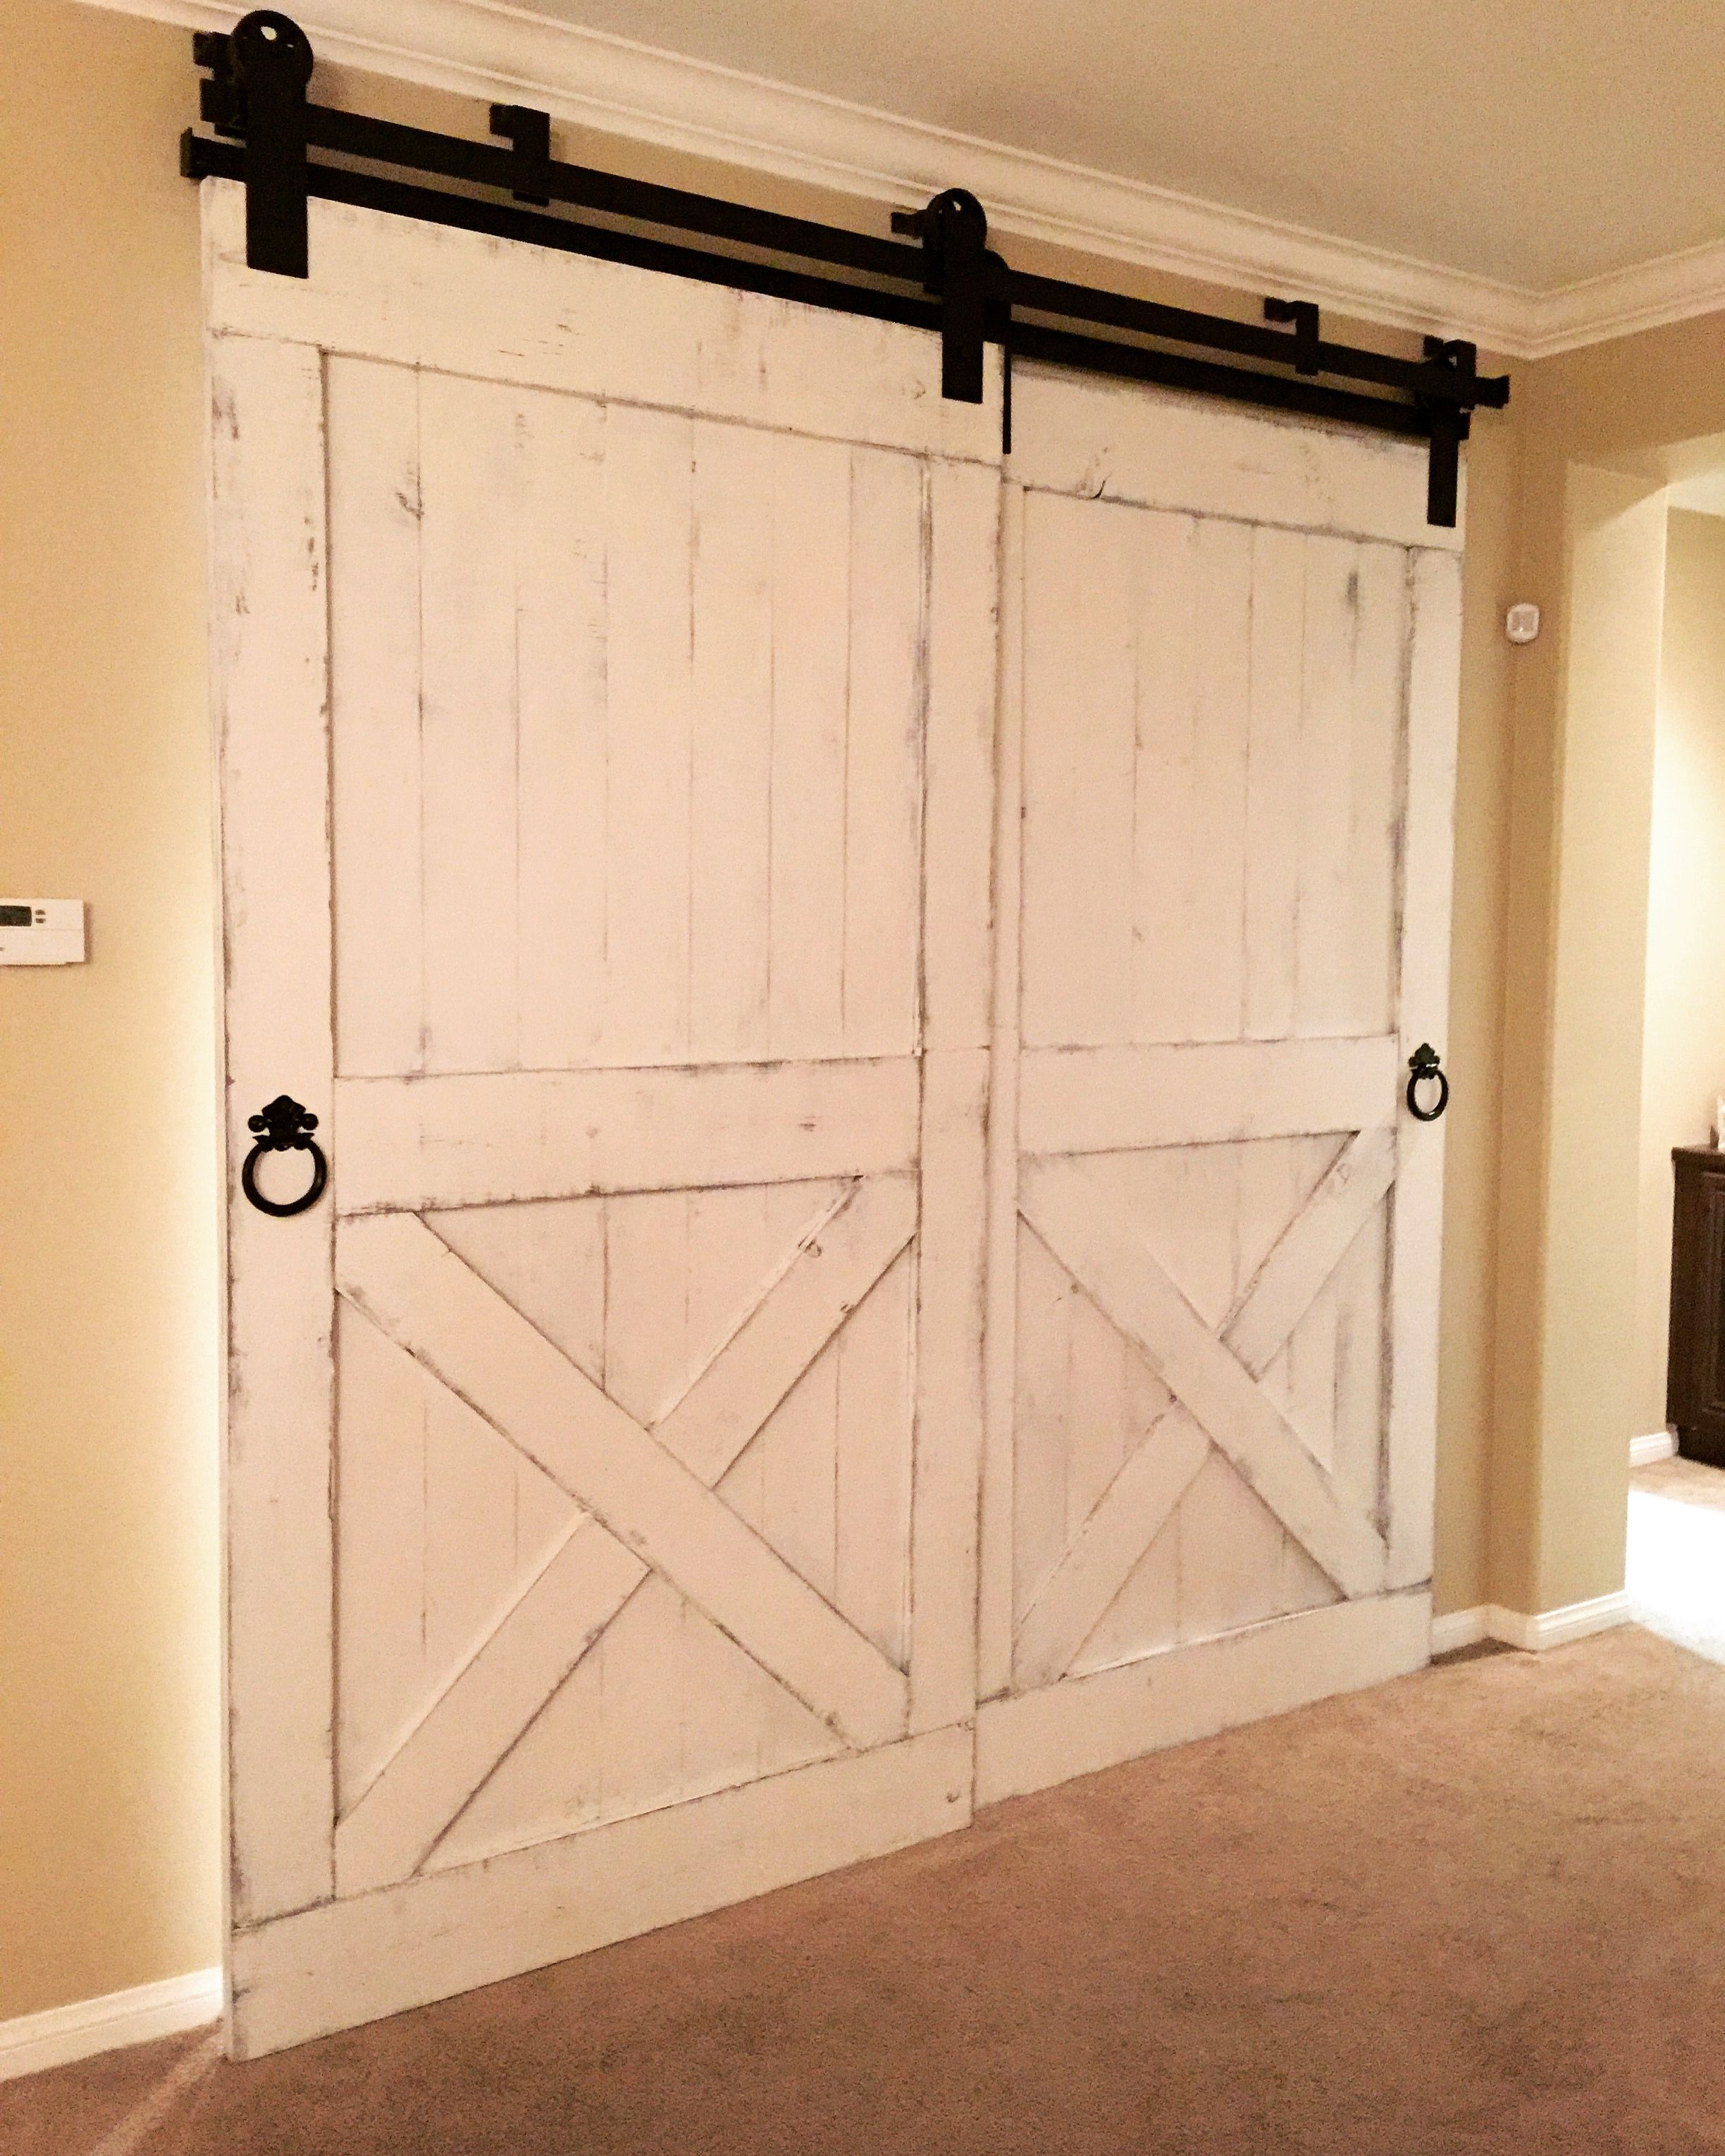 bedroom doors diy hardware white closet barn strap black bypassing sliding null door bypass projects ana wall hook rolling